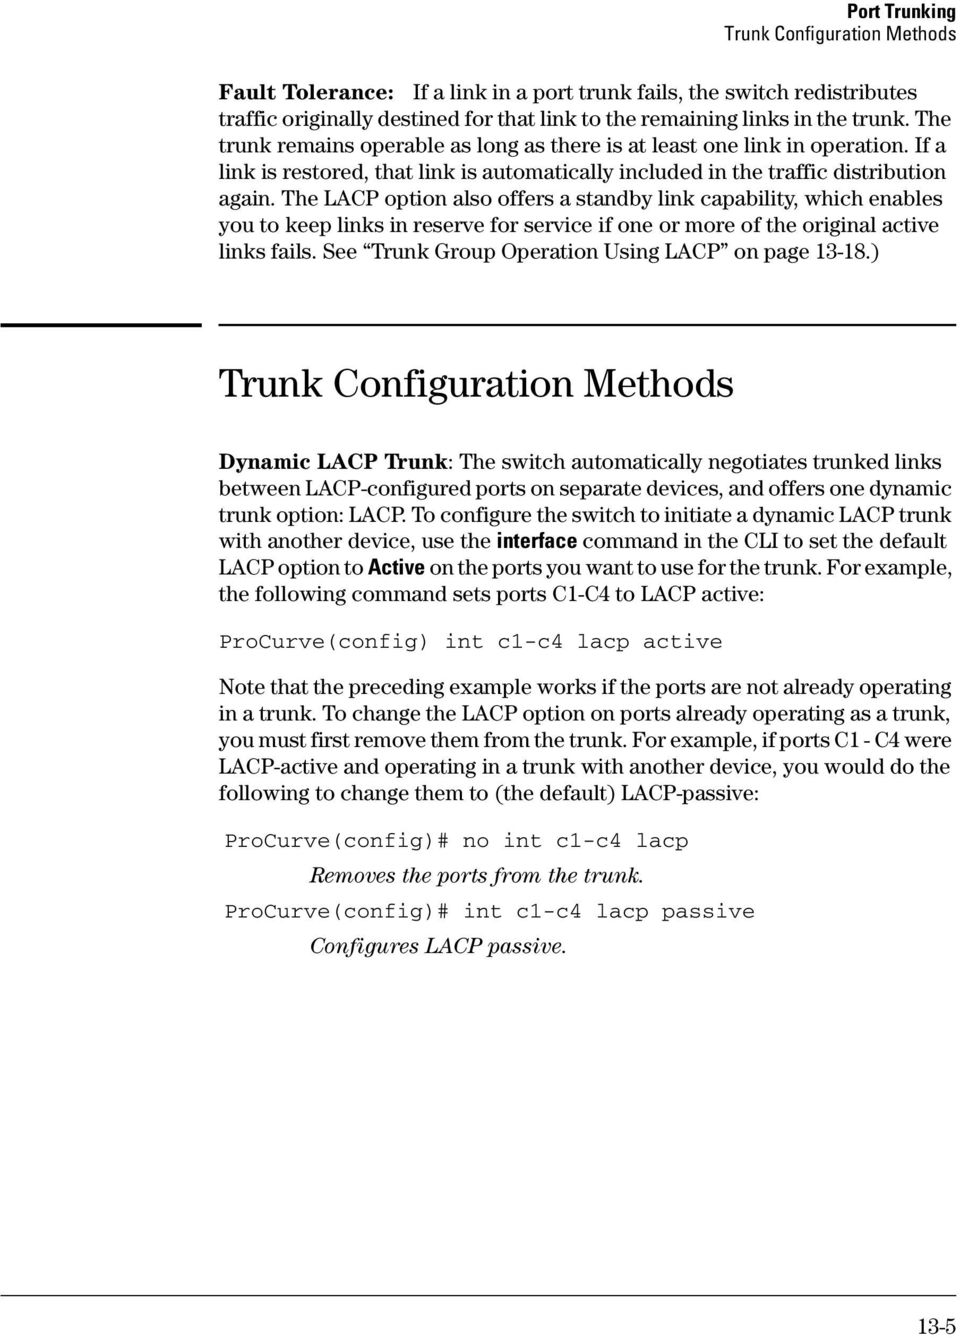 Port Trunking  Contents - PDF